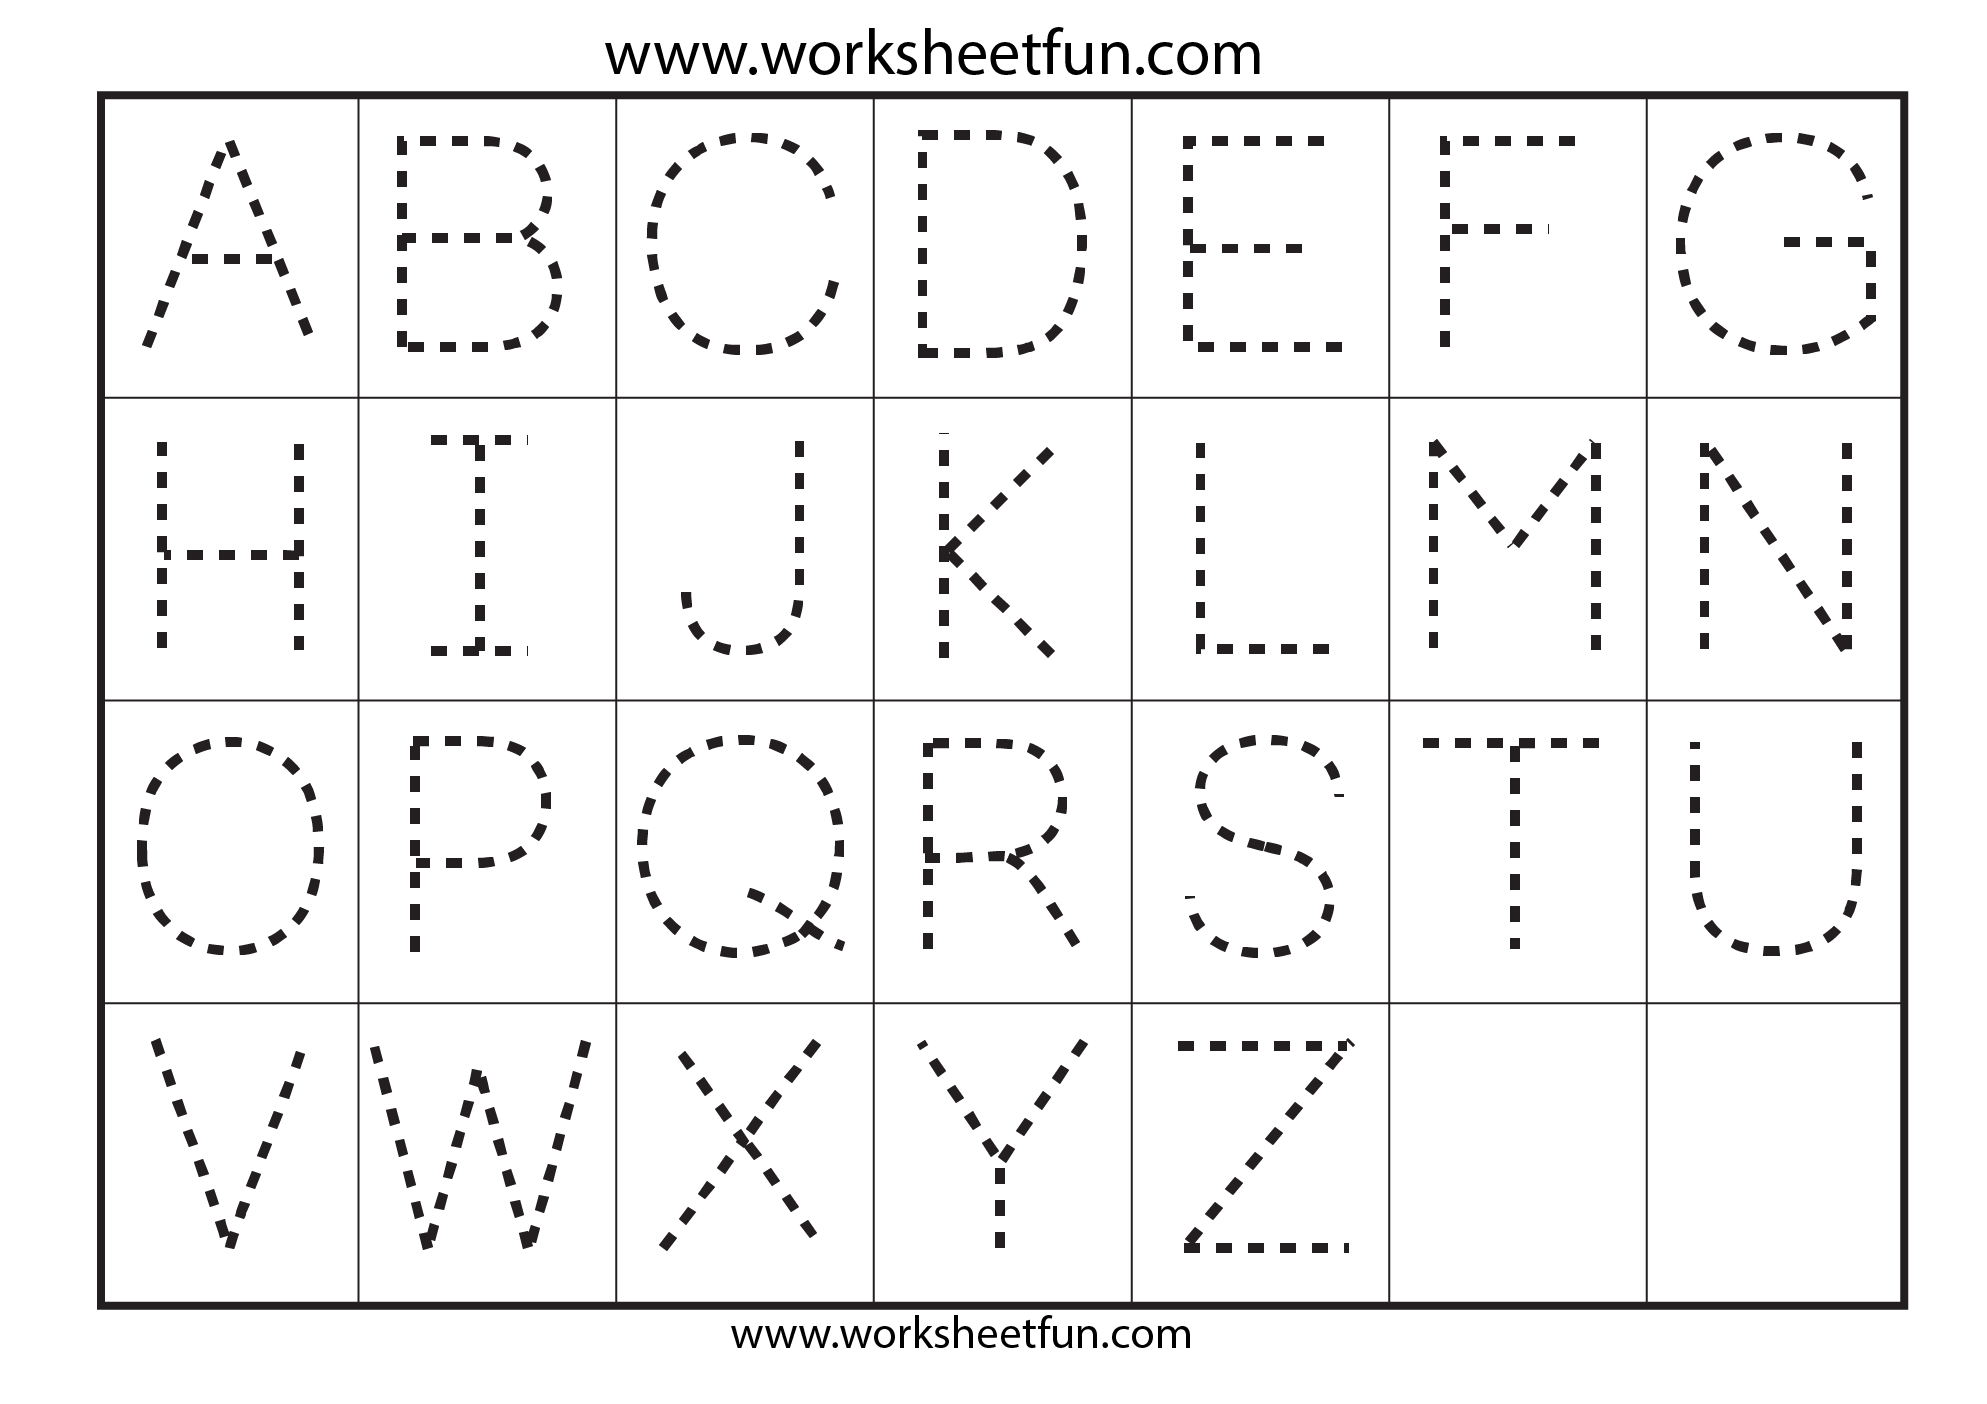 Worksheet Abc Tracing Worksheets For Kindergarten abc worksheets for kindergarten tracing 7 free printable worksheetfun